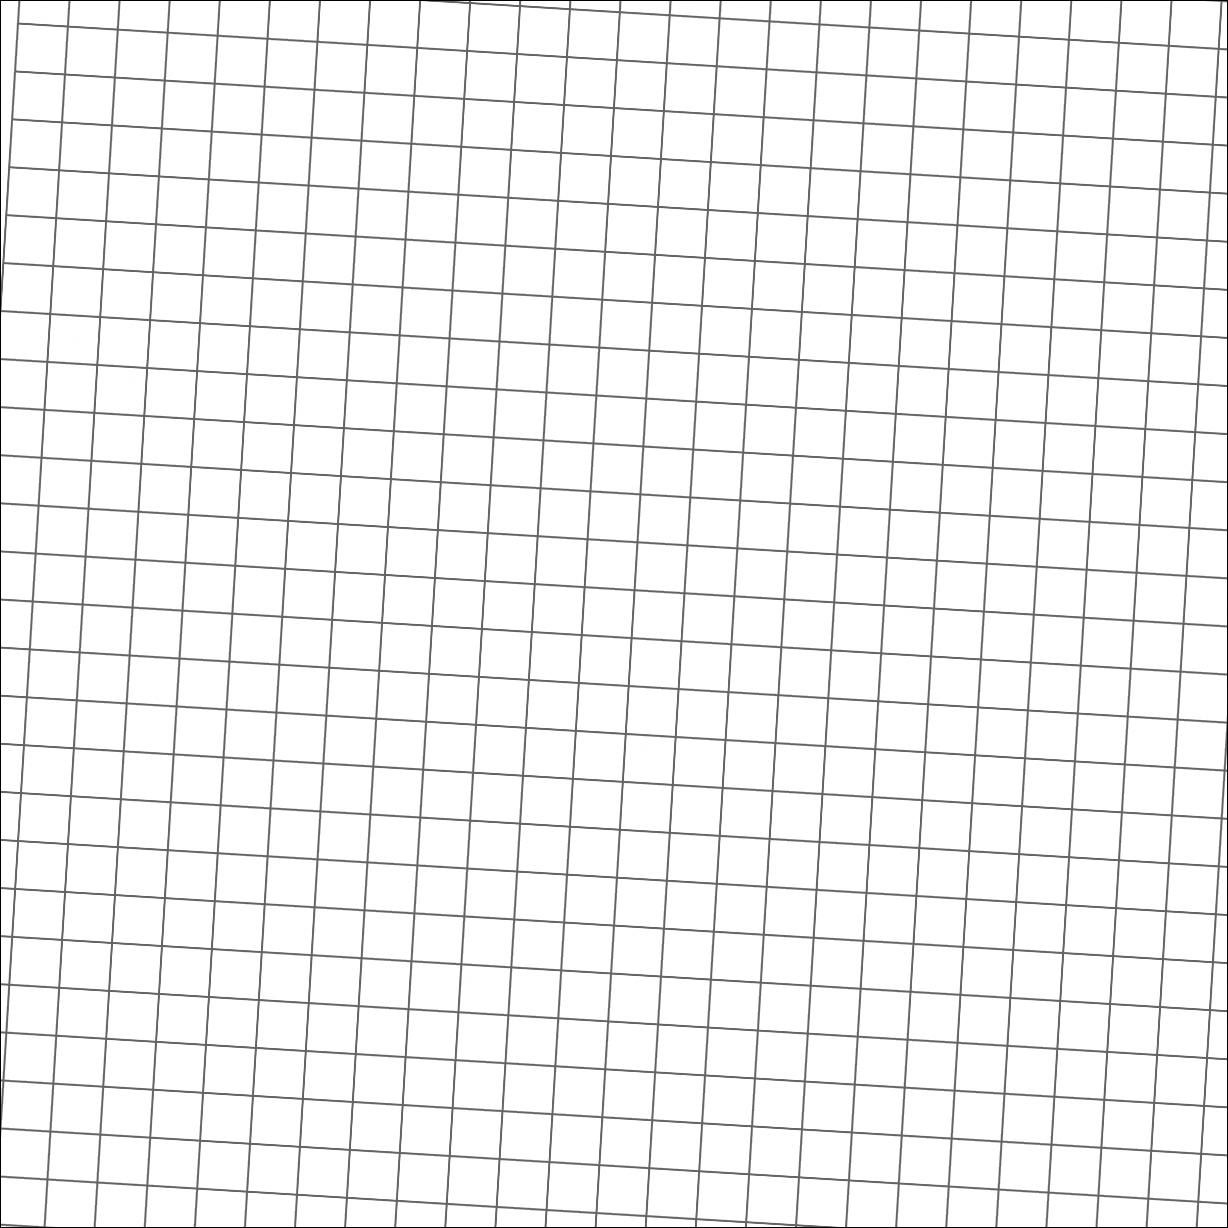 Free Printable Graph Paper! Blank Standard And Metric Graph Paper In  Various Sizes. Standard  Printable Blank Graph Paper